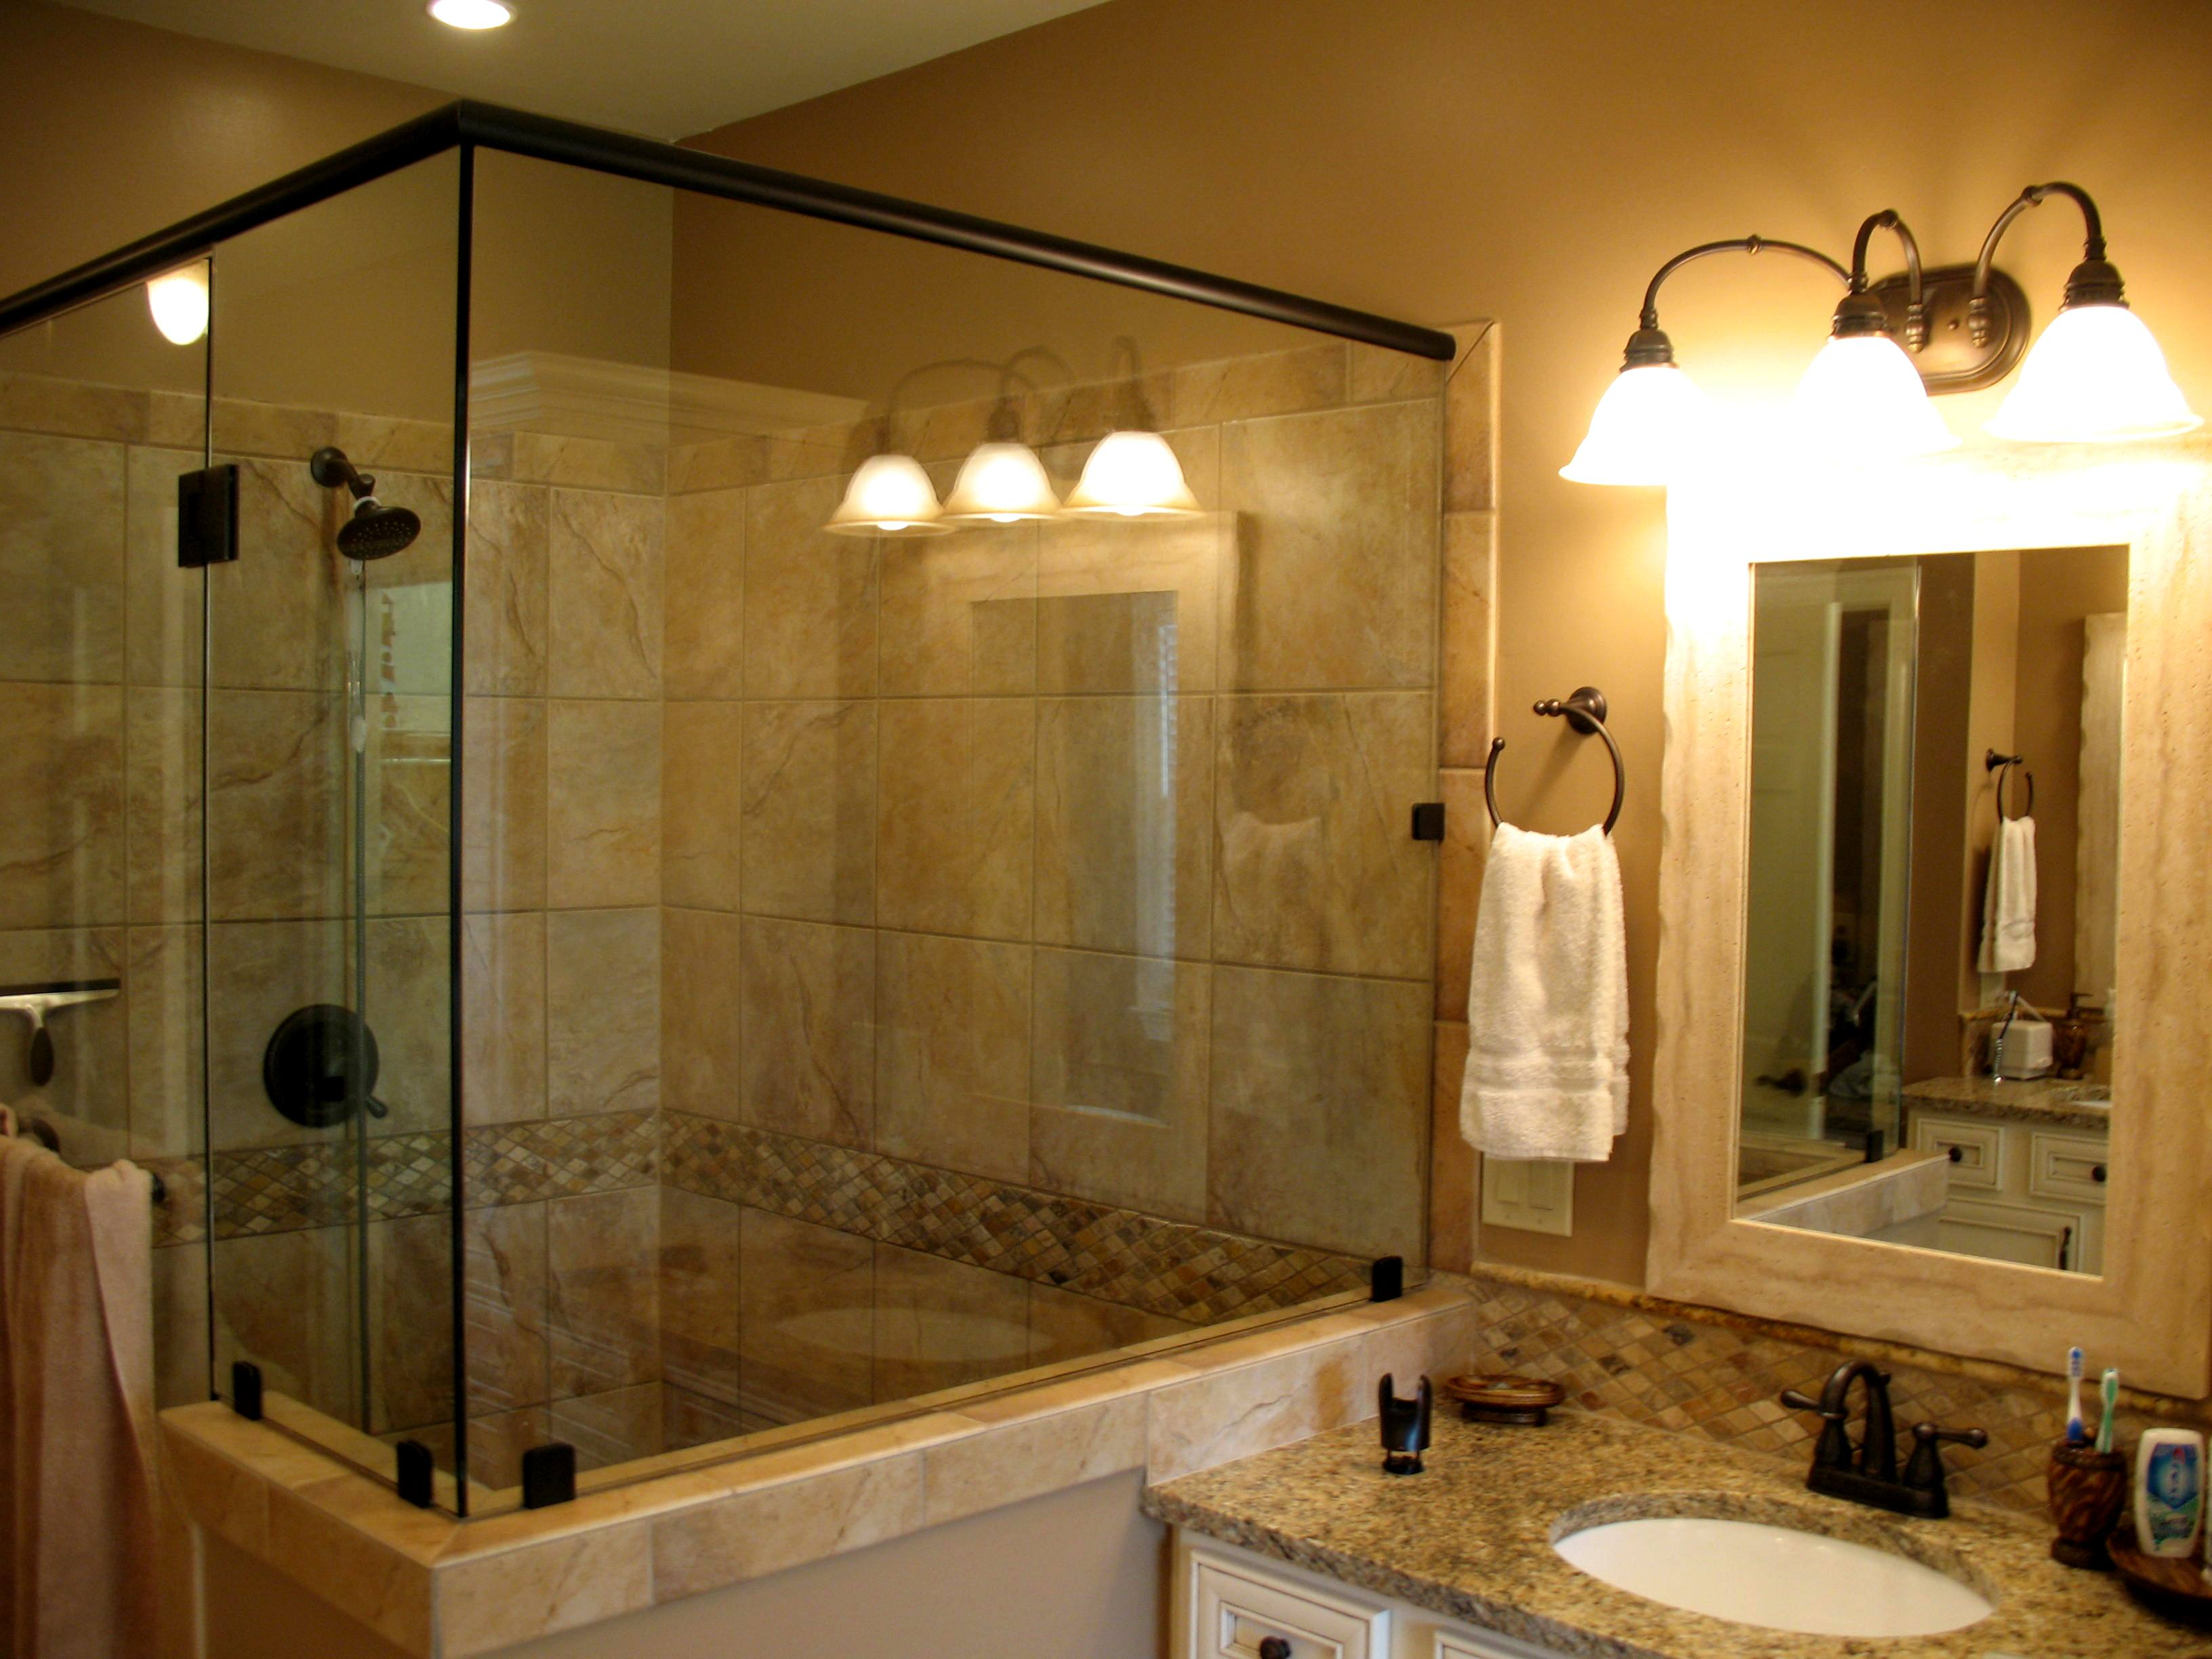 Impressive Master Bathroom Shower Remodel Ideas 3264 x 2448 · 551 kB · jpeg